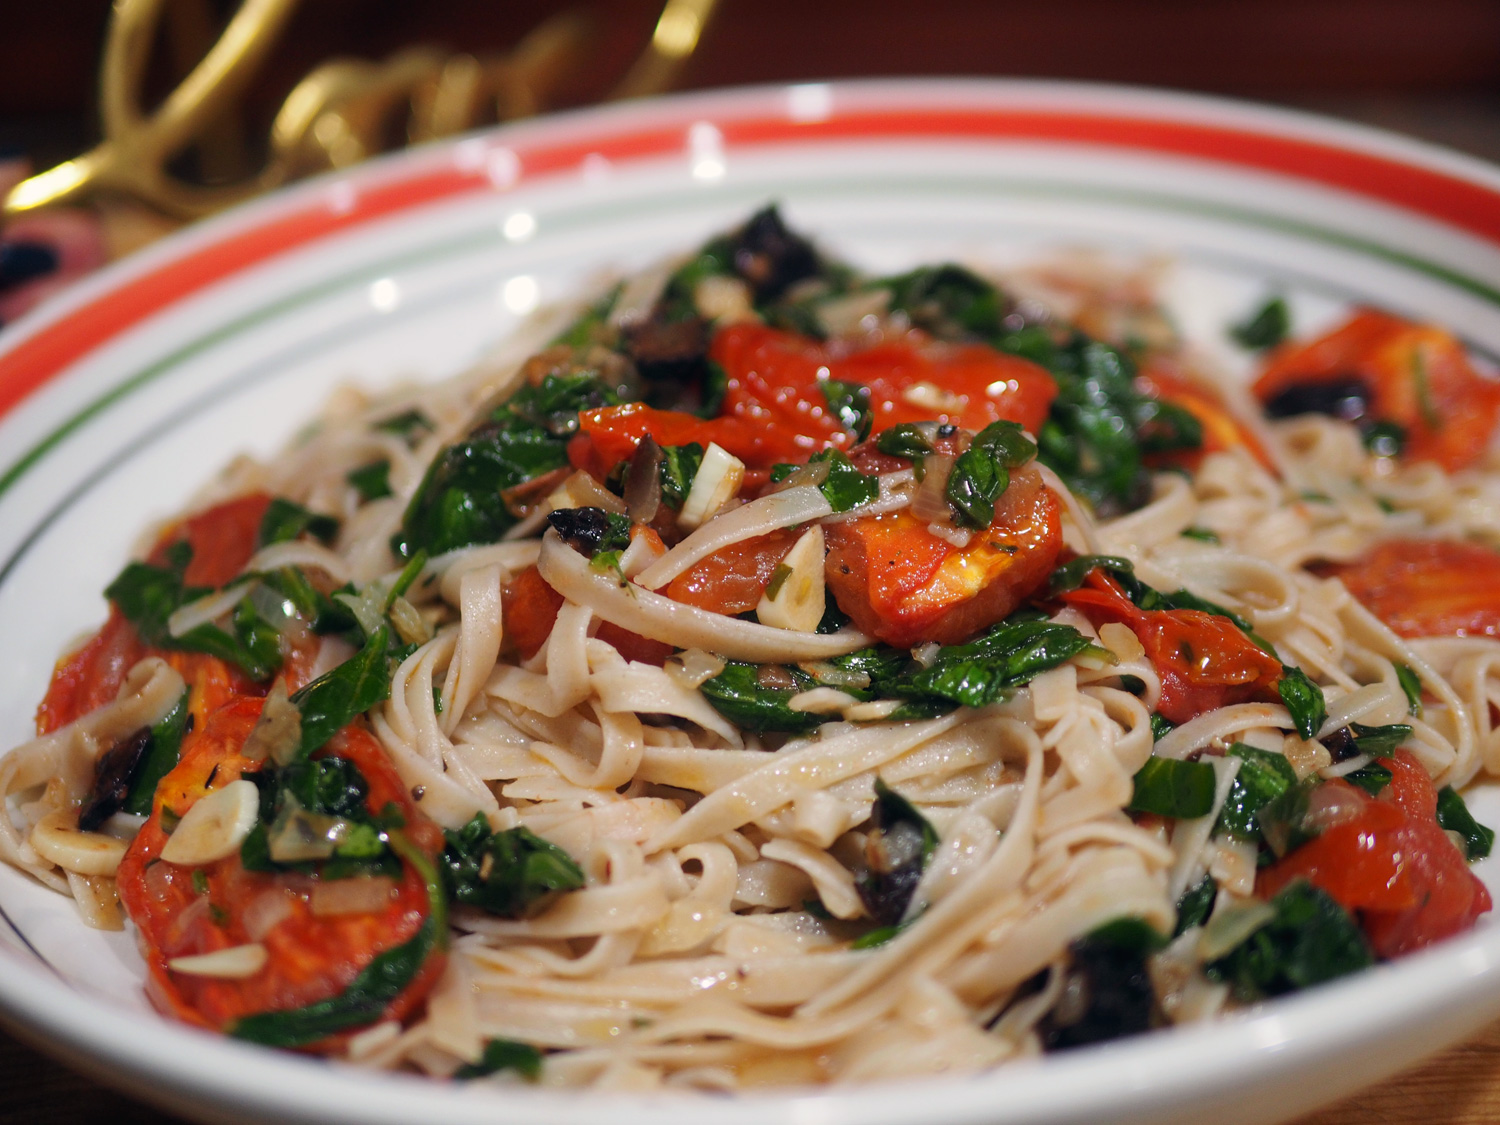 Luscious linguine with earthy notes from the spinach, salty from the olives and a sweetness that the mighty tomato brings.